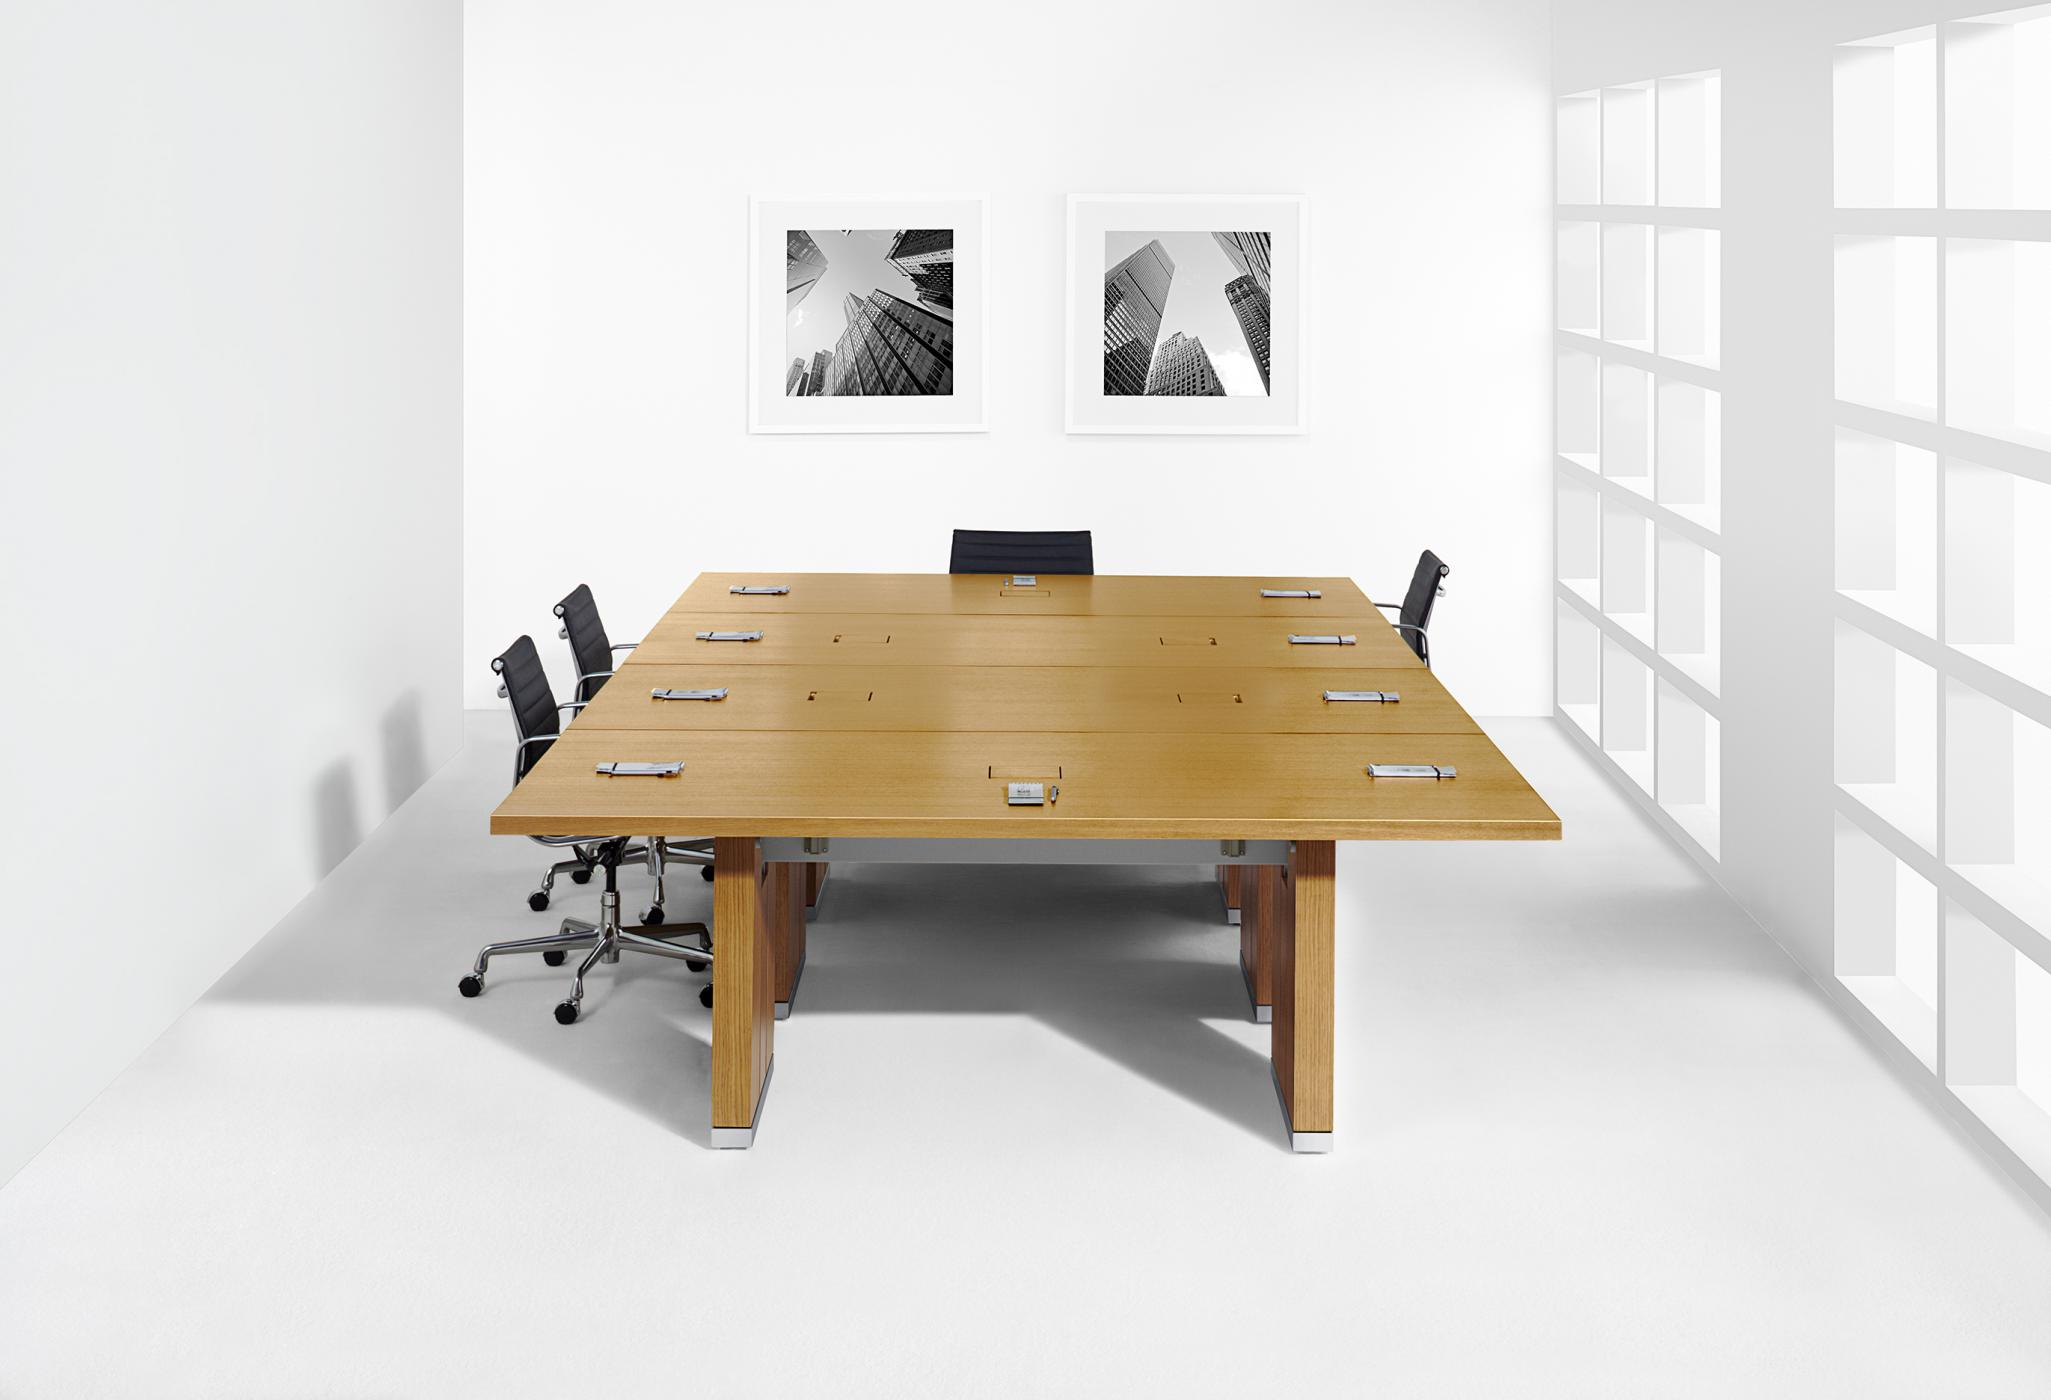 Reconfigure tables quickly and easily with thoughtful table ganging, leveling, and power distribution.